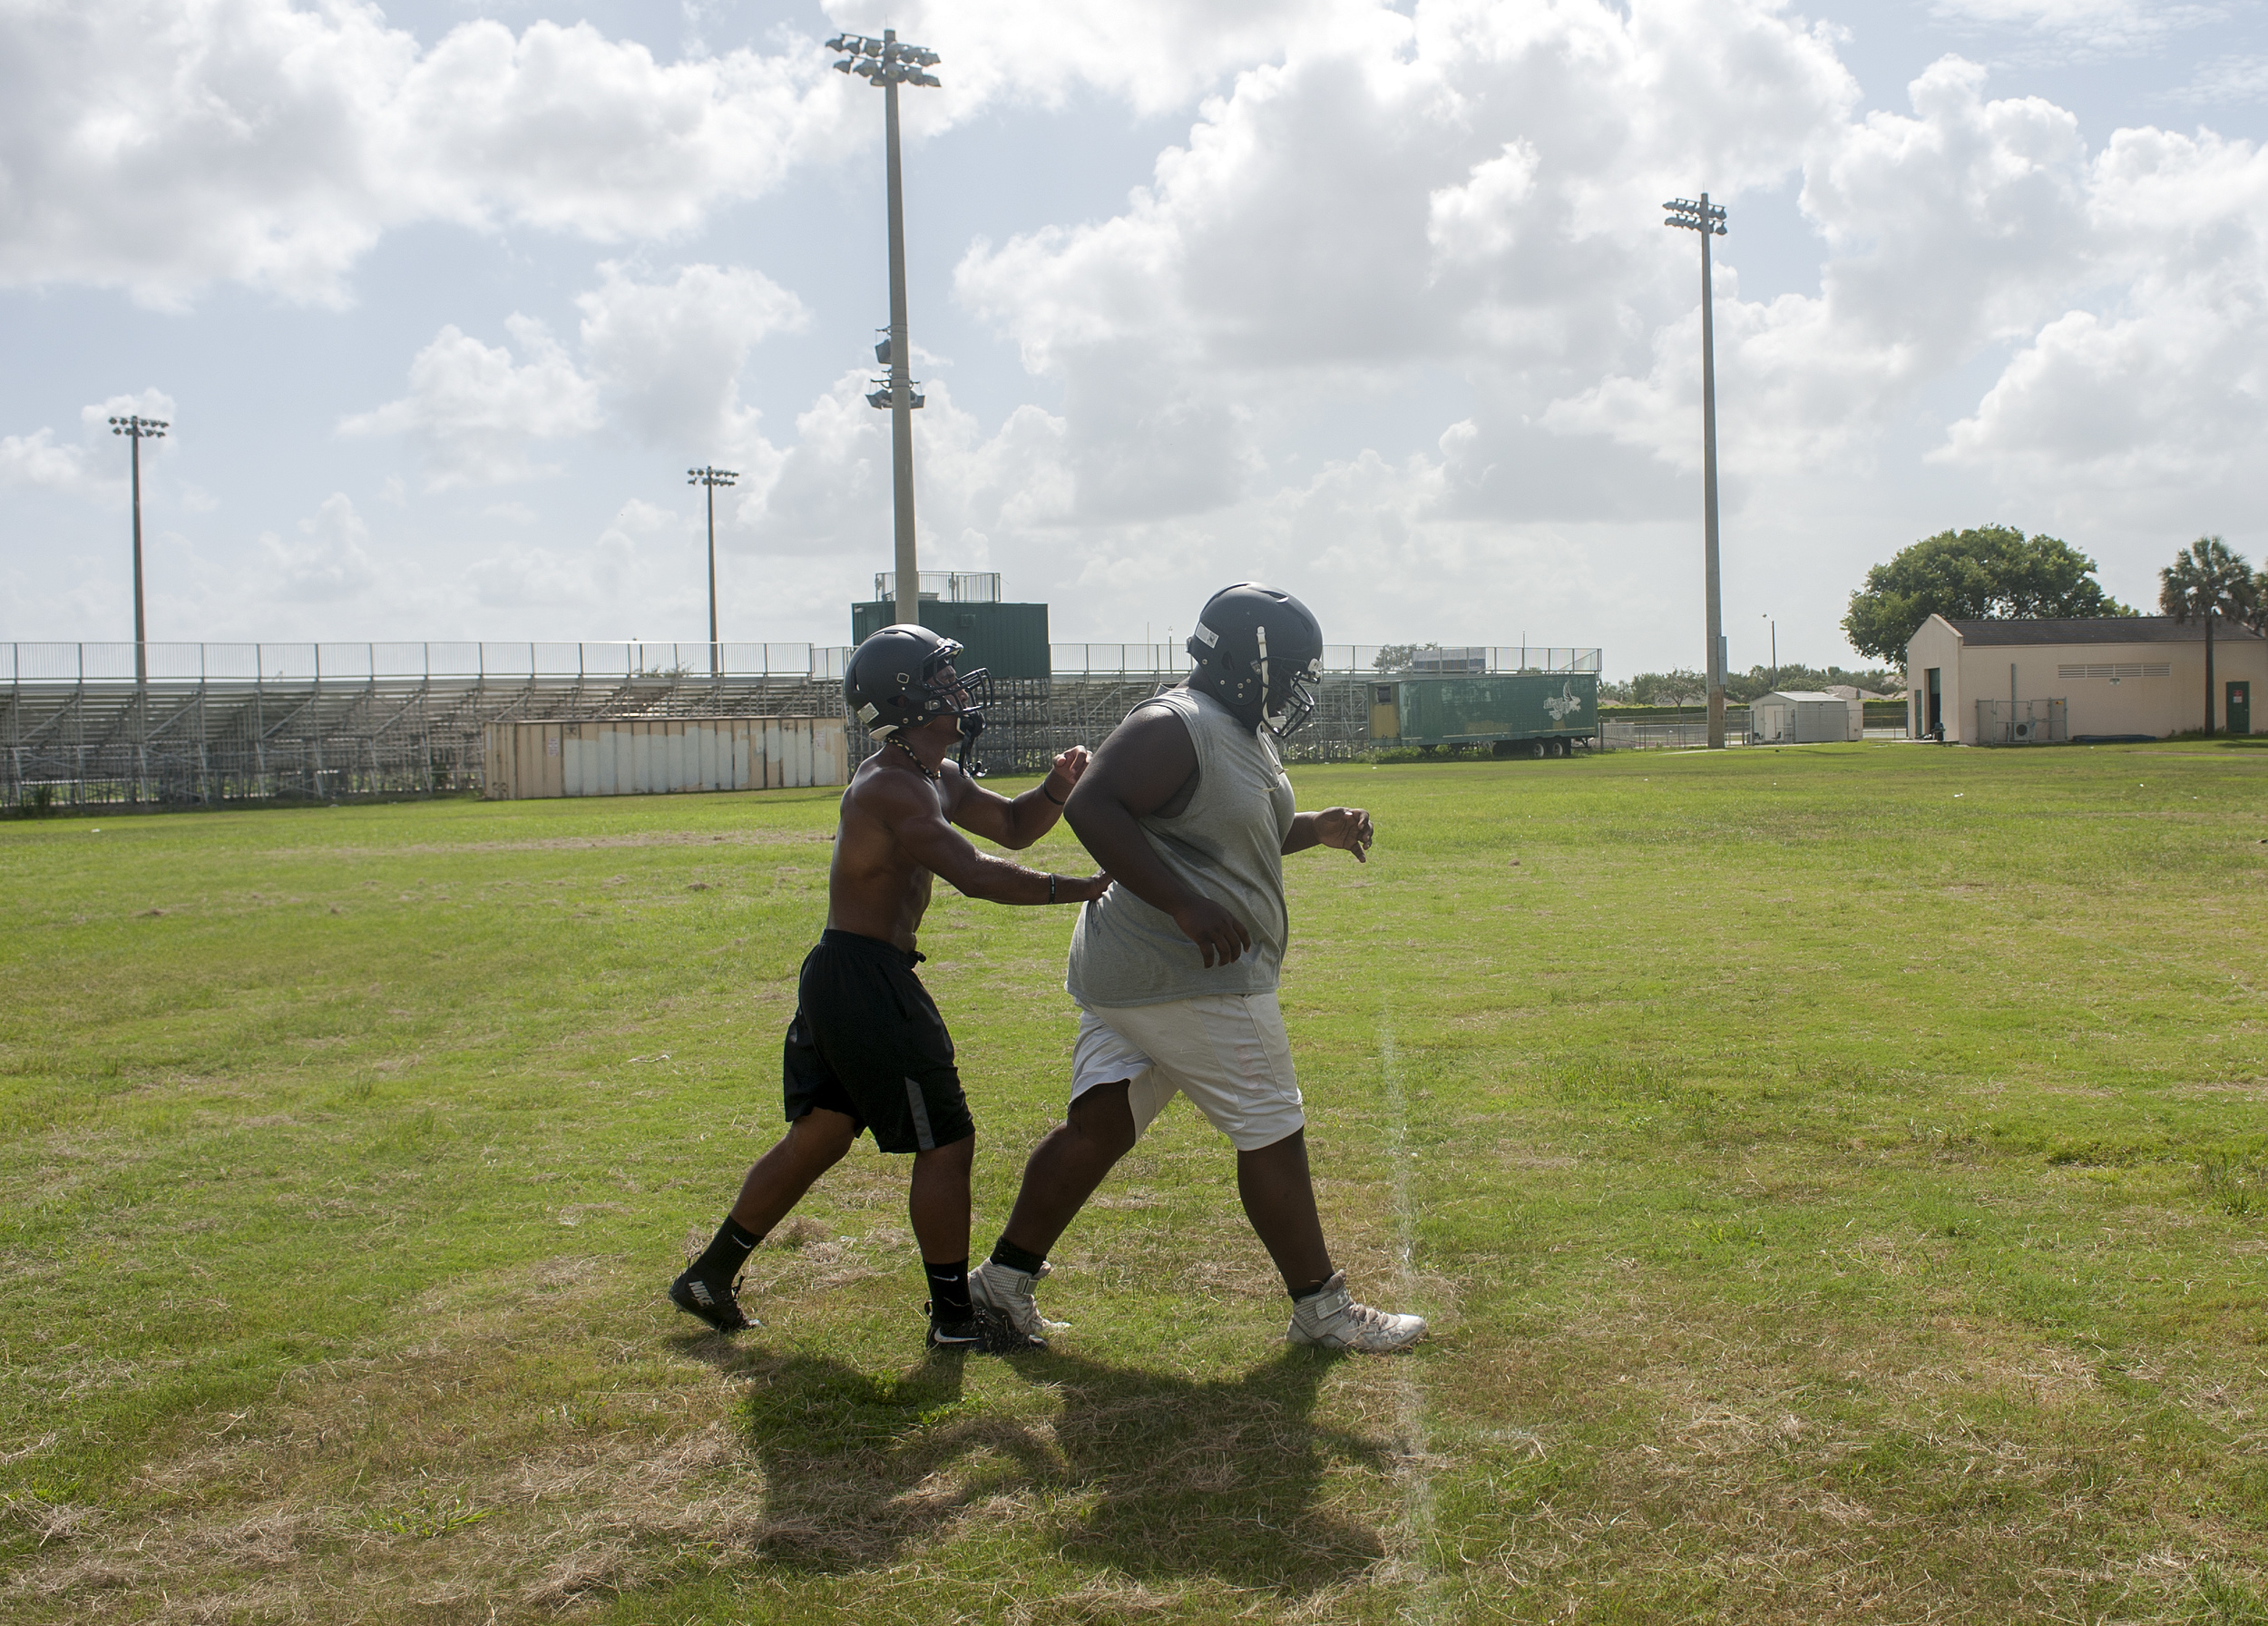 Flanagan high school senior wide receiver Clevan Thomas helps one of his teammates during conditioning drills on the first practice of the high school football season at Flanagan High School on Monday, Aug. 1, 2016. The reigning state champions look to repeat again despite the loss of key players from last year.